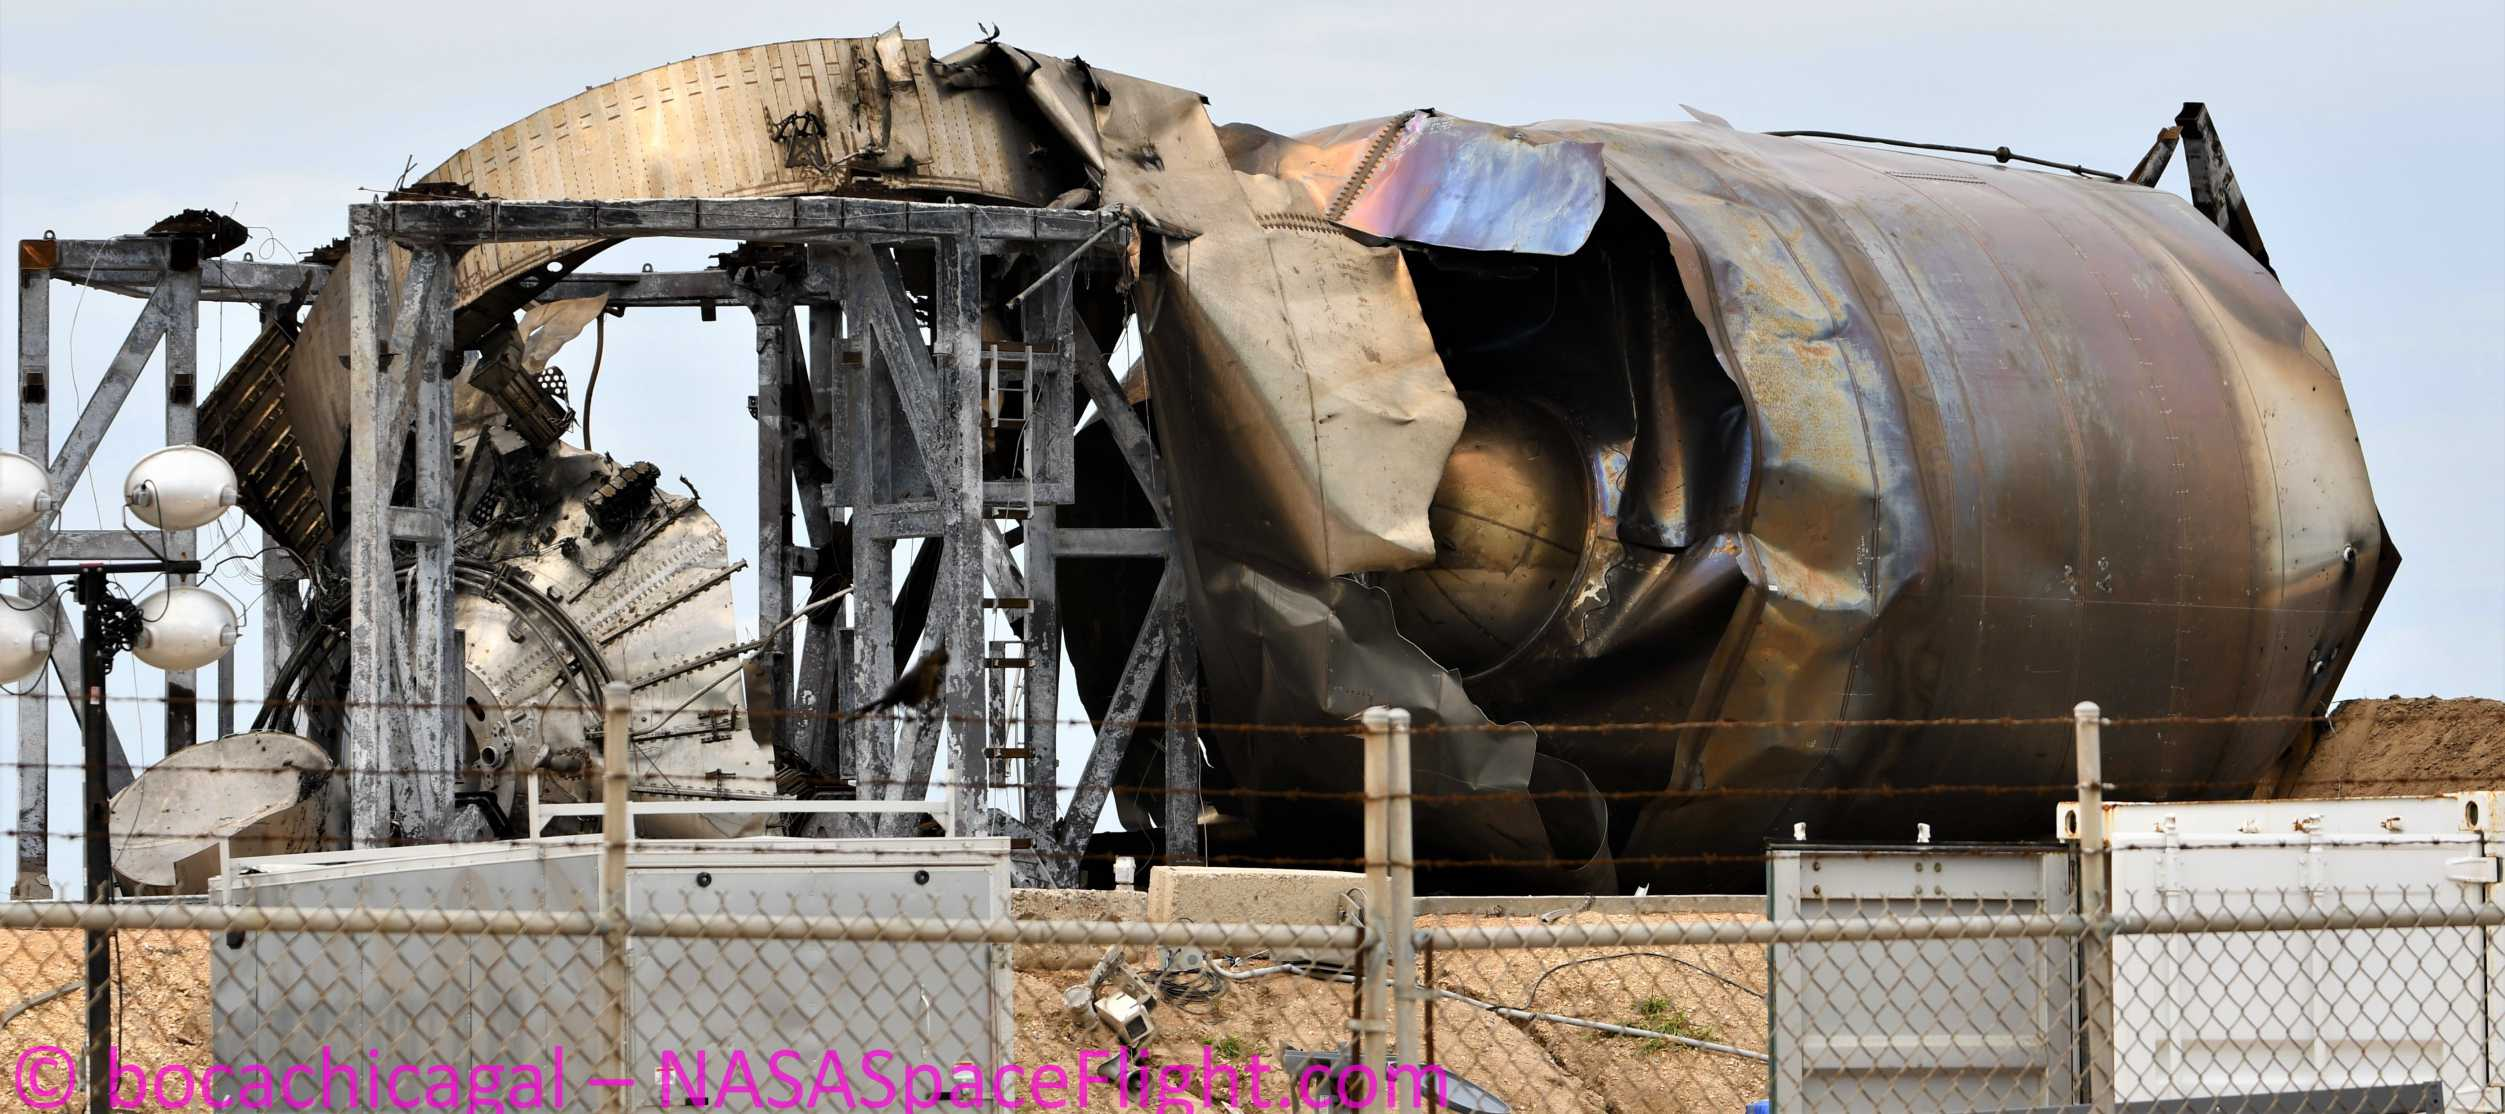 Starship Boca Chica 053020 (NASASpaceflight – bocachicagal) SN4 remains 5 crop (c)